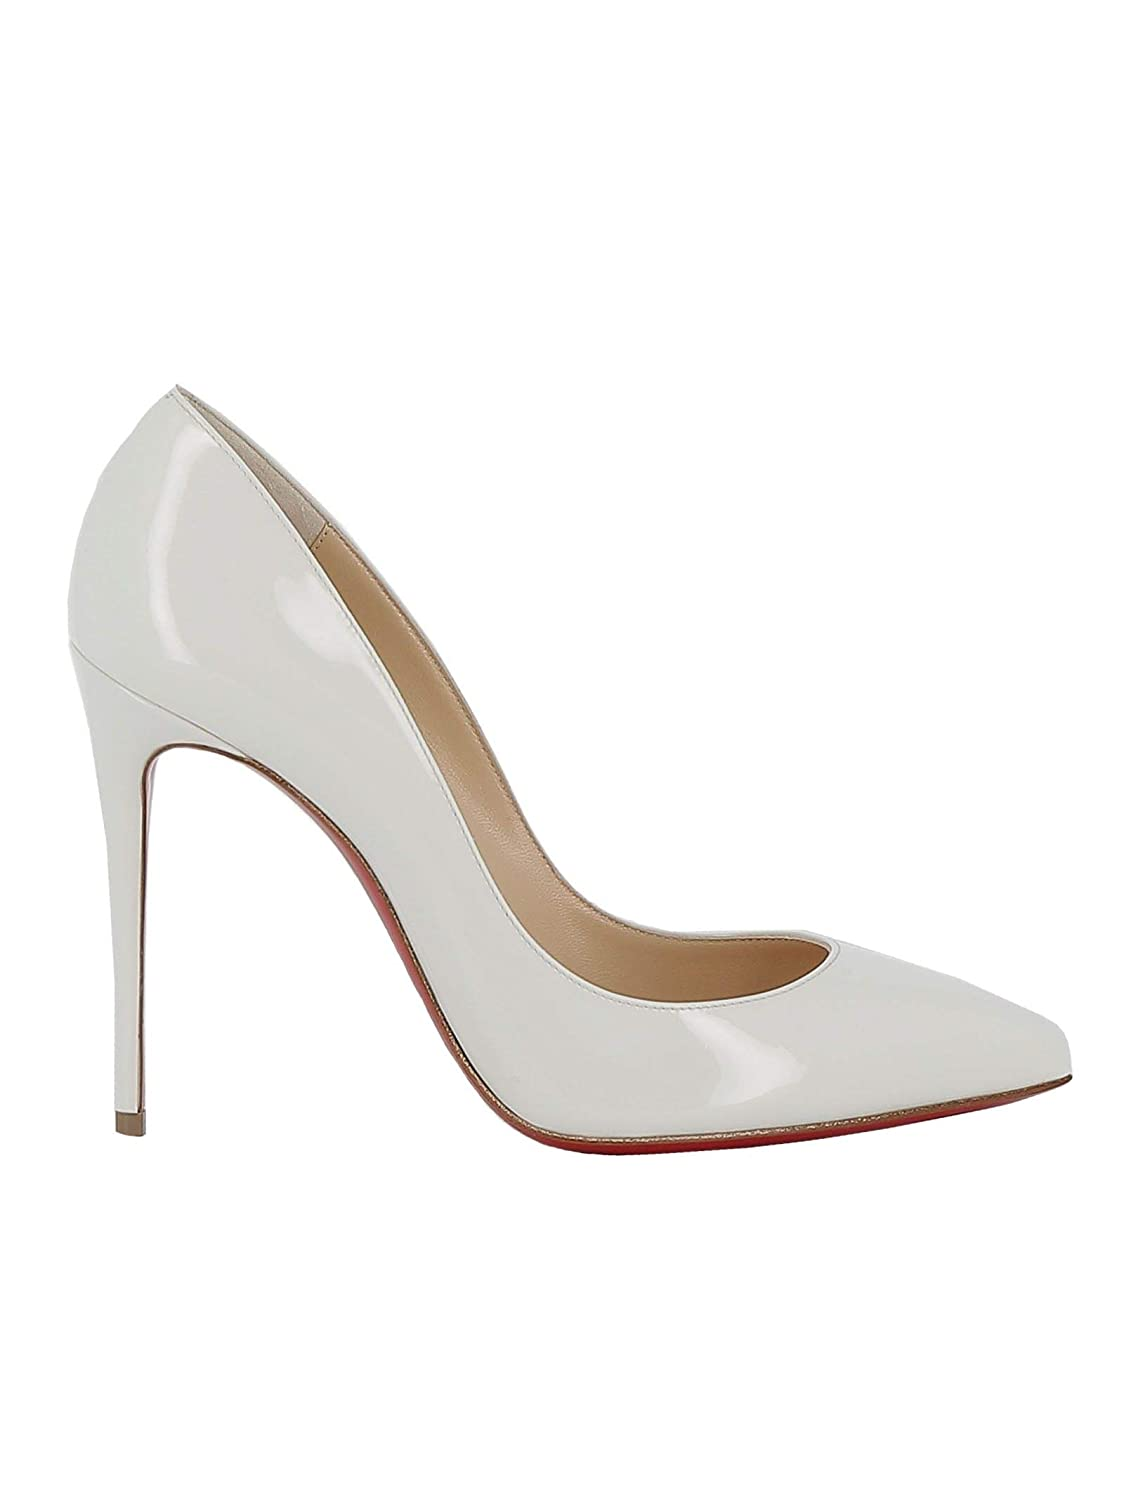 huge discount 5176c a718f Amazon.com | Christian Louboutin Women's 3140495W156 White ...